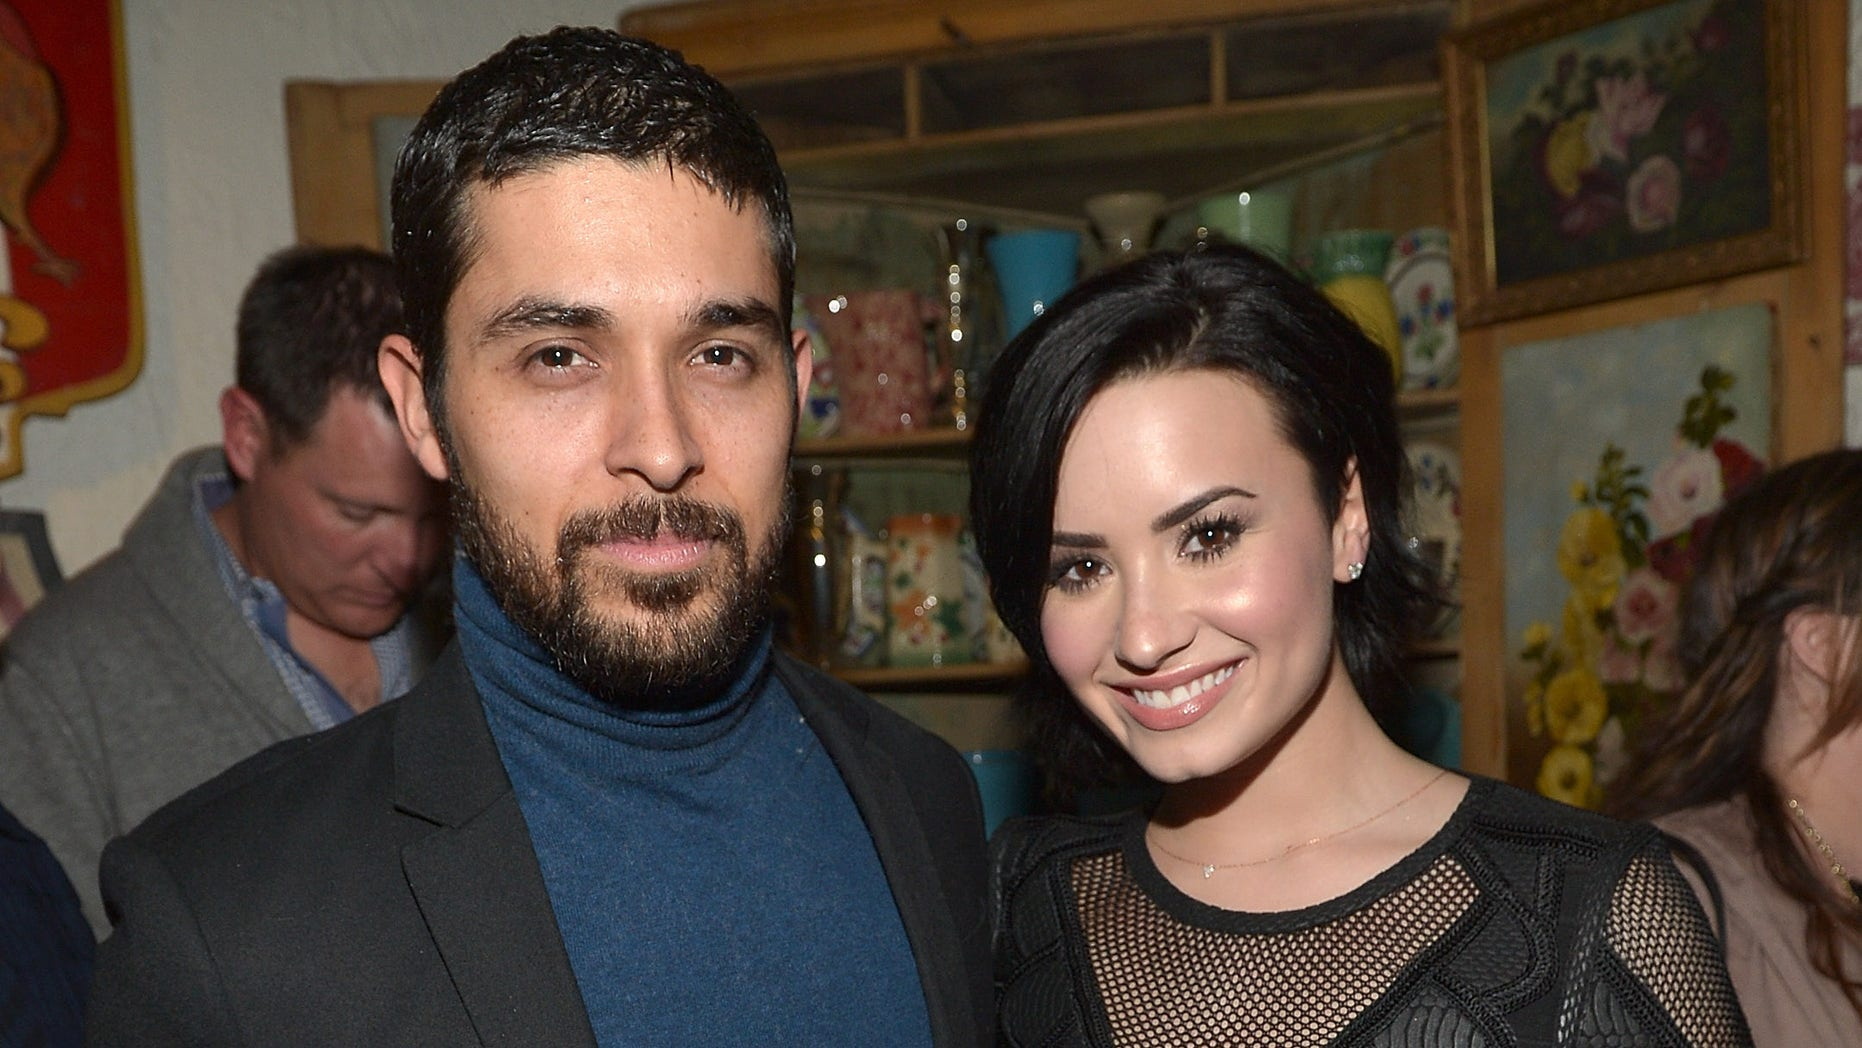 Wilmer Valderrama and Demi Lovato on January 20, 2015 in Los Angeles, United States.